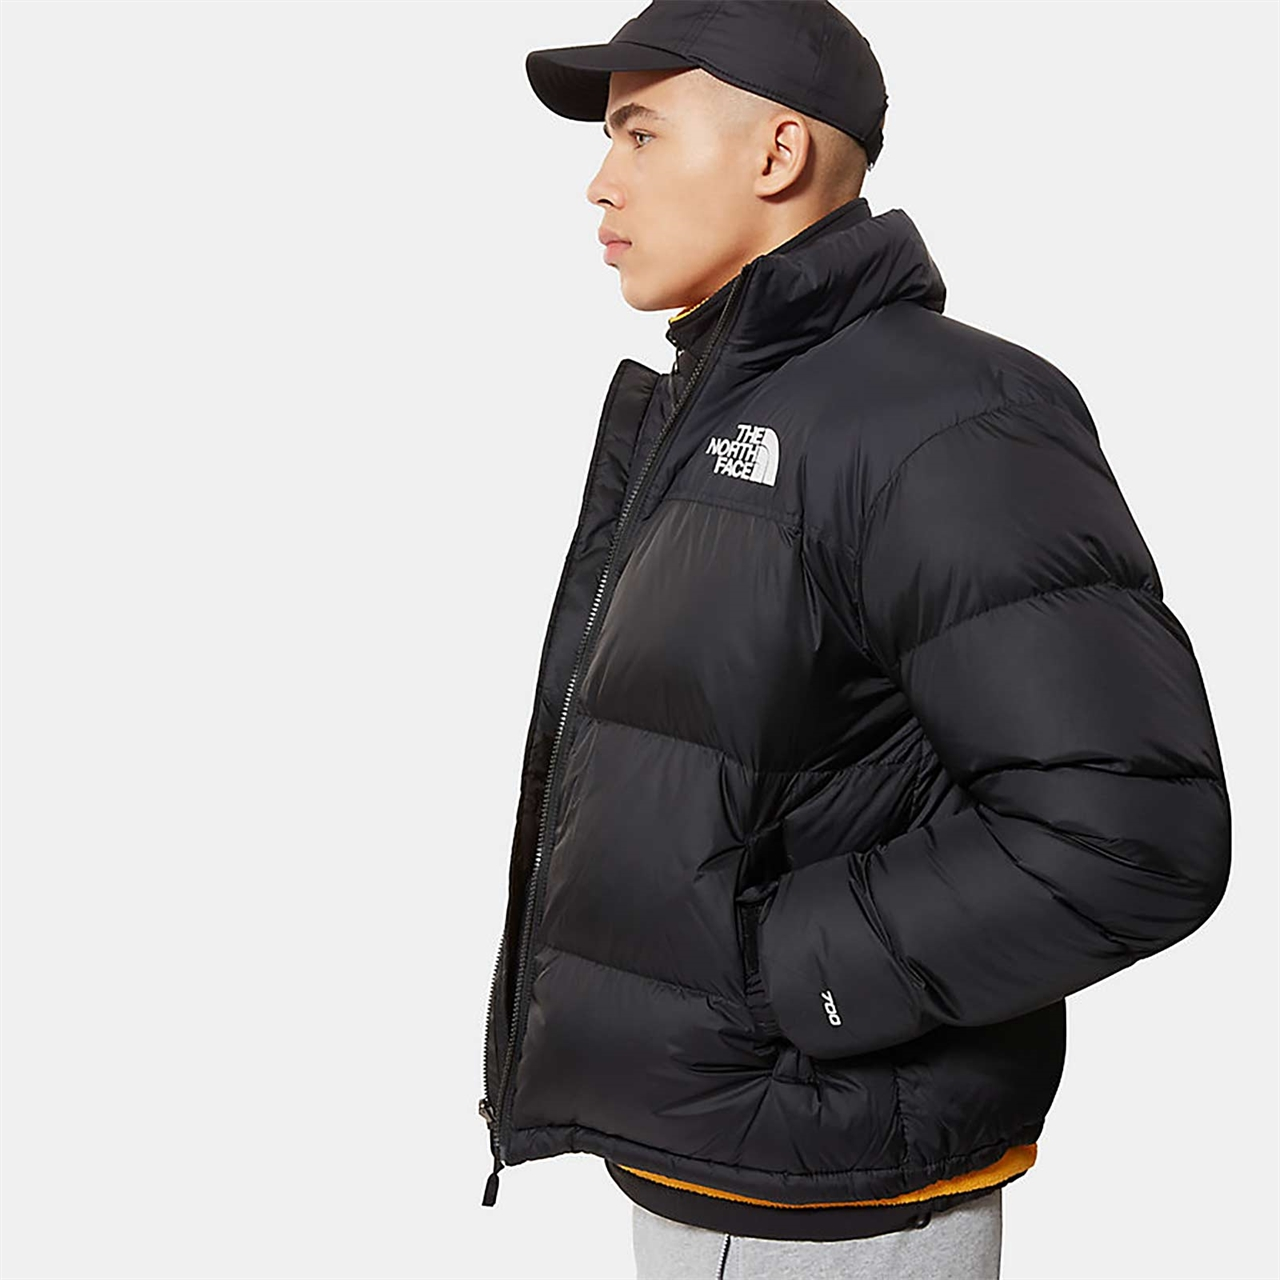 c024bc6f7 Shelta - The North Face 1996 Retro Nuptse Jacket (T93C8DJK3)